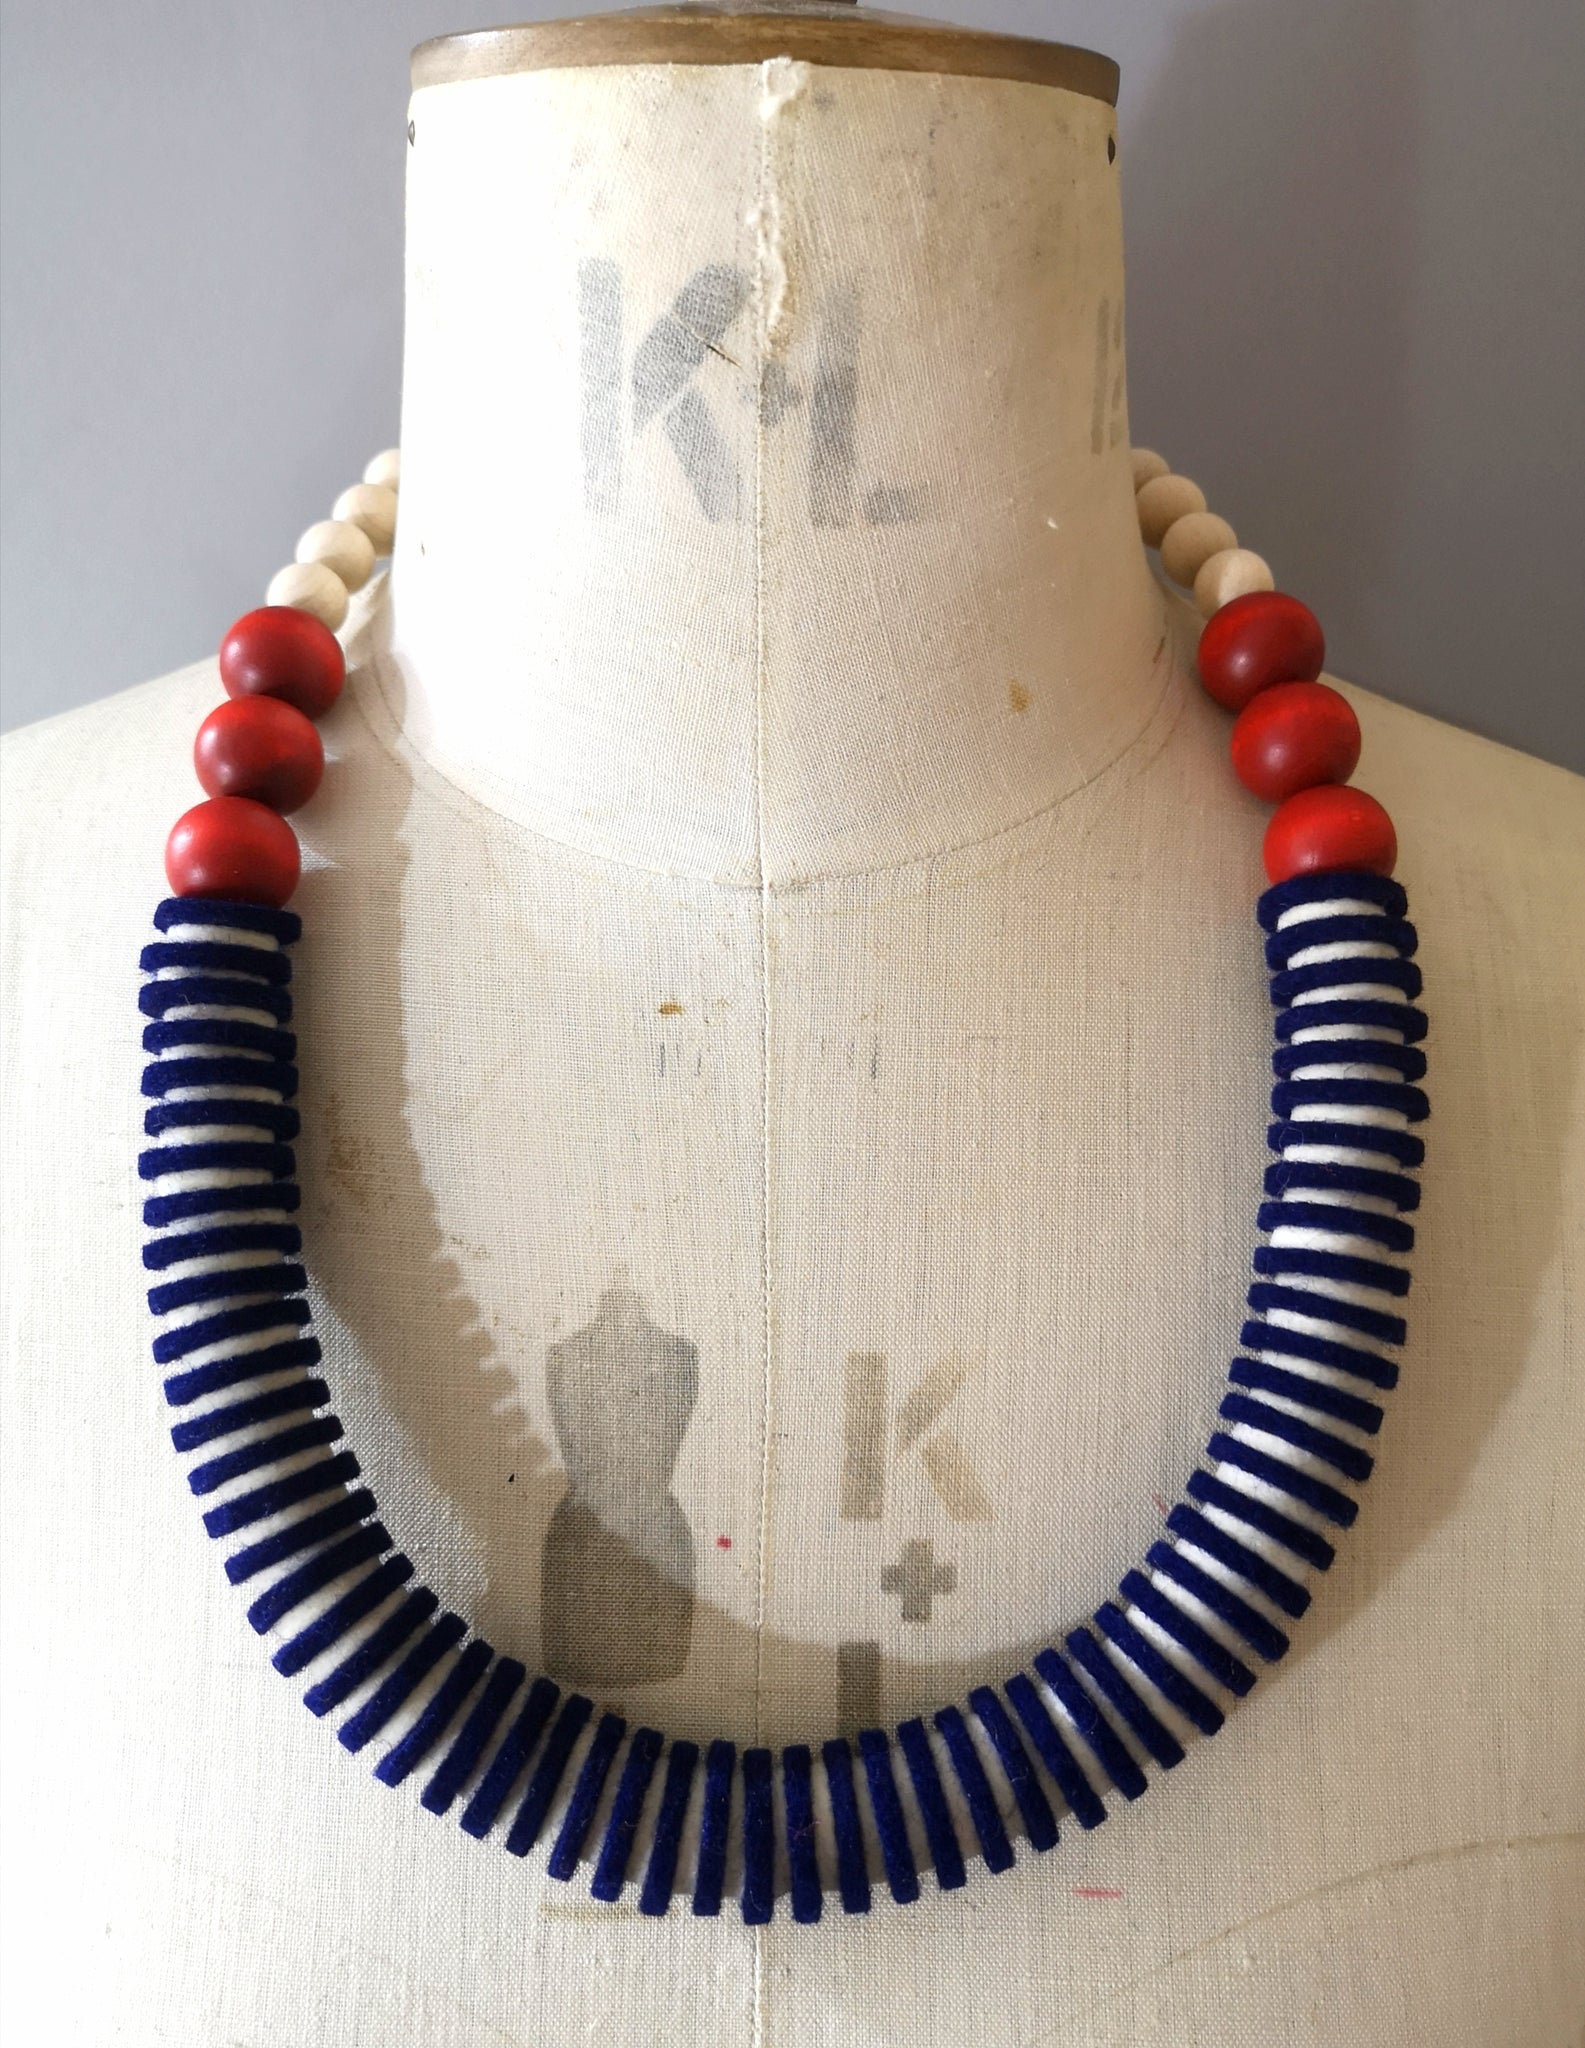 Vertebrae Necklace in Breton